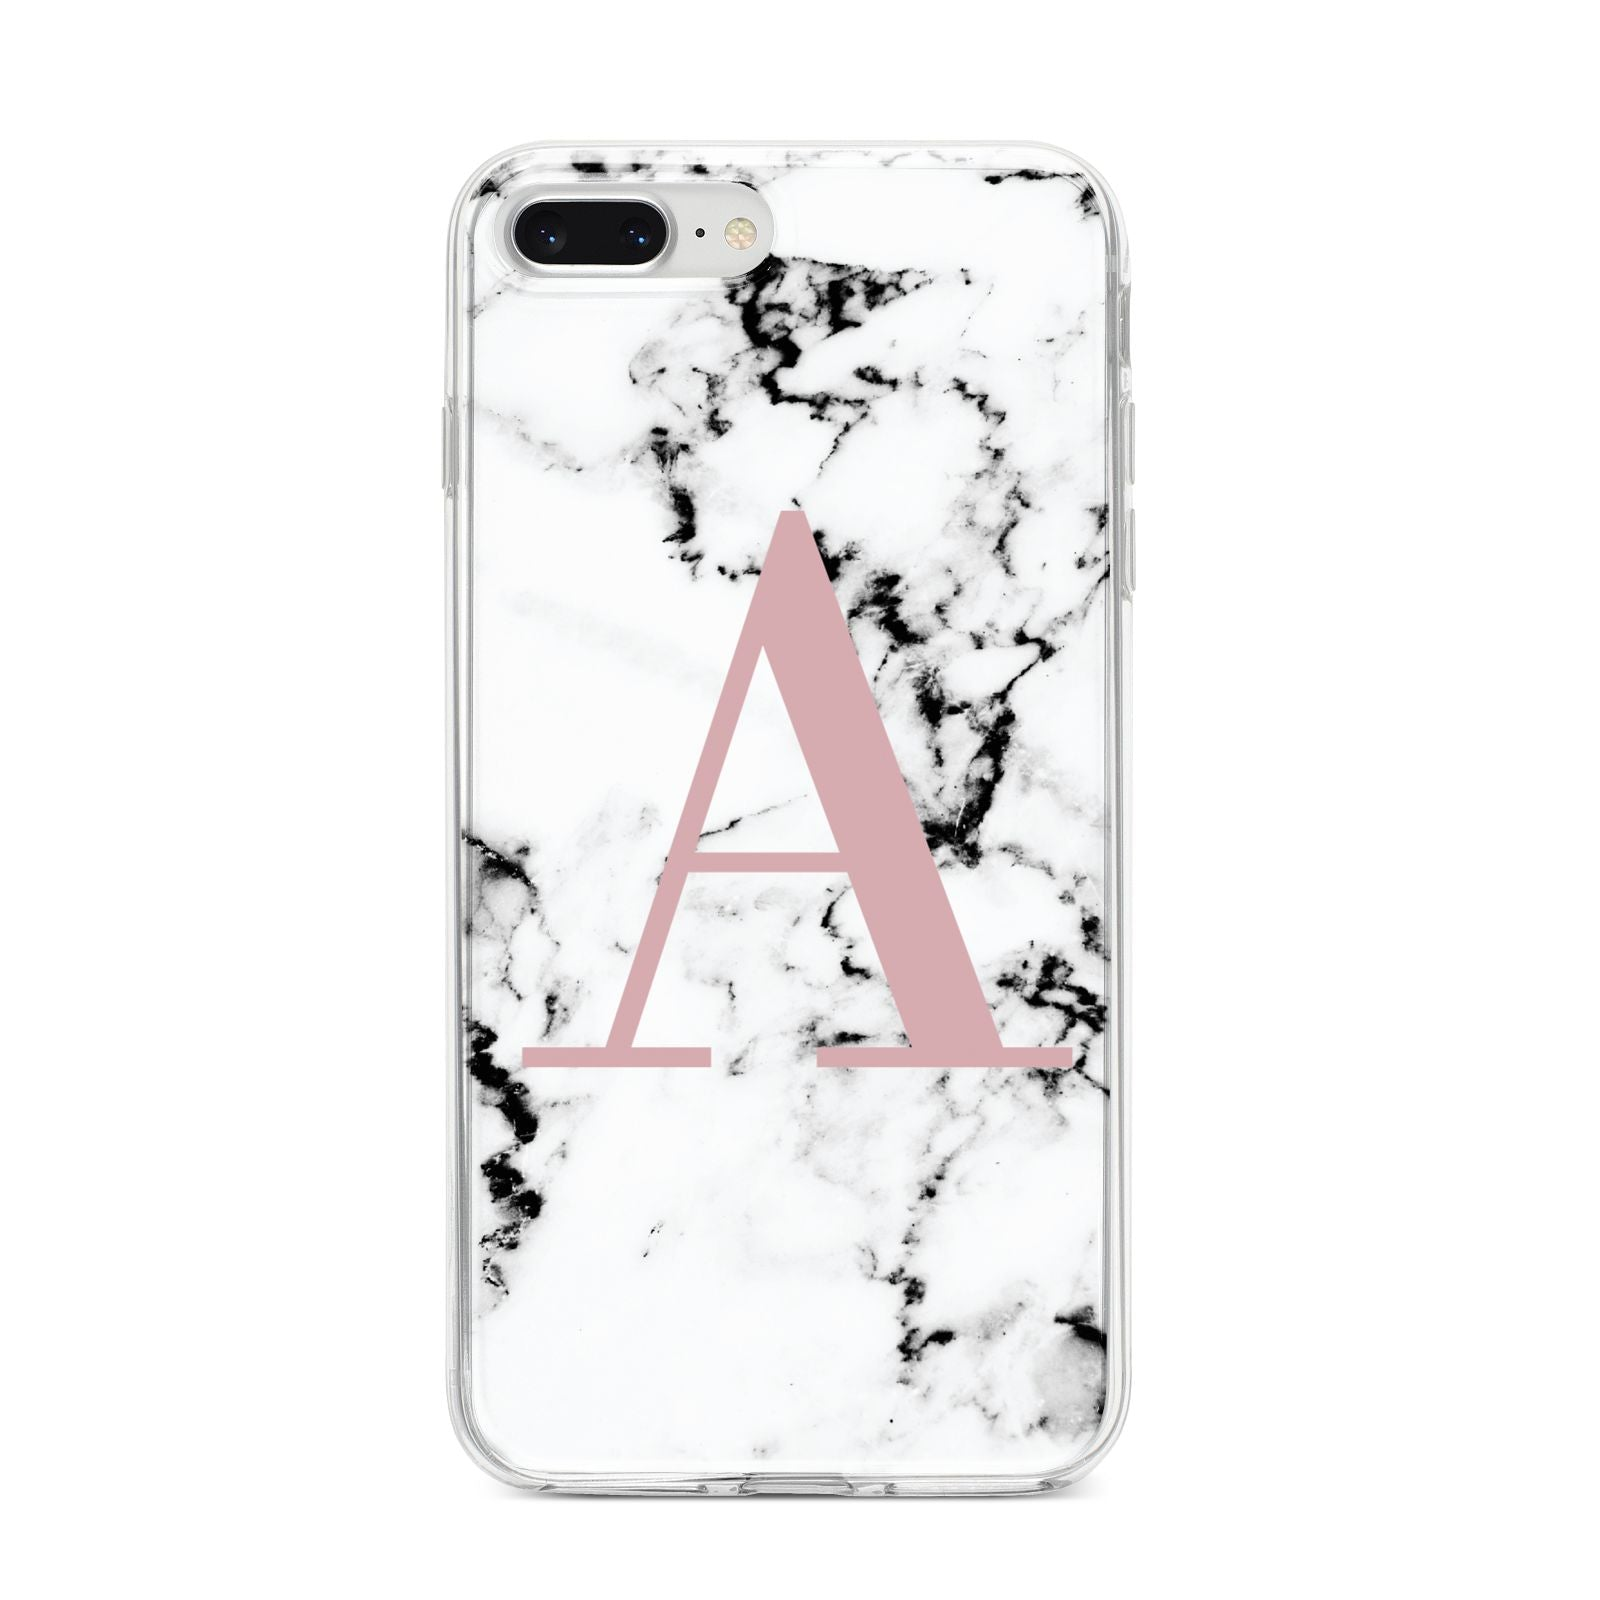 Marble Effect Pink Initial Personalised iPhone 8 Plus Bumper Case on Silver iPhone